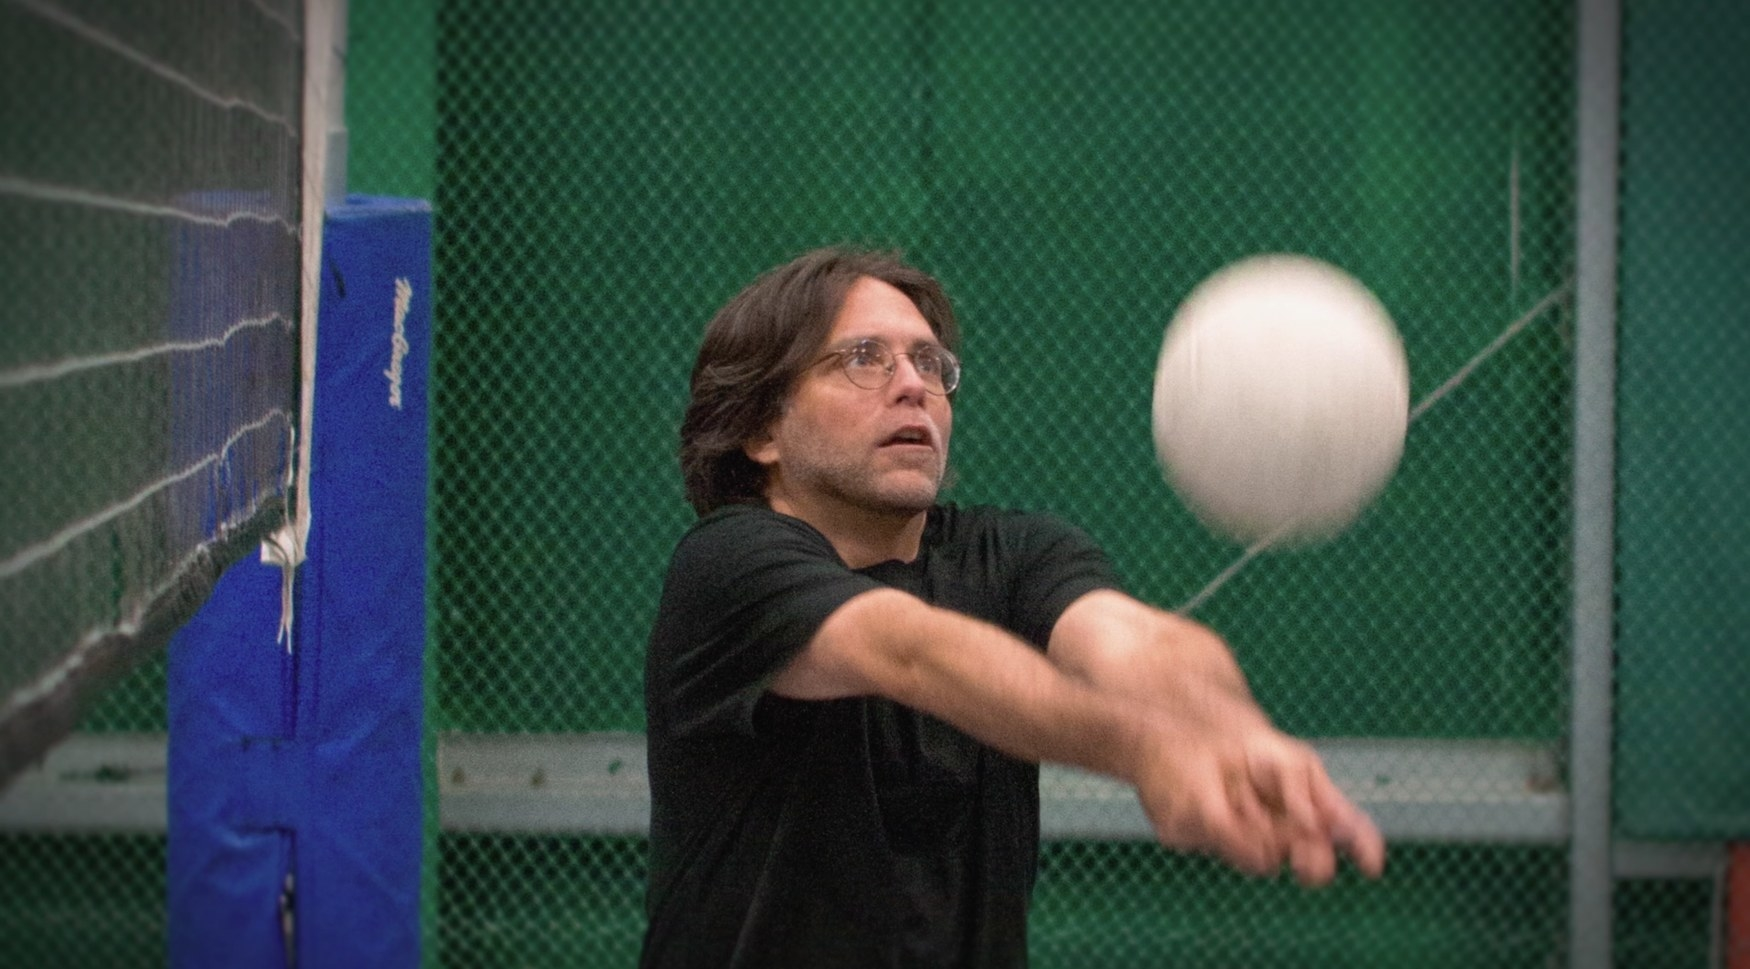 A man in glasses hitting a volleyball